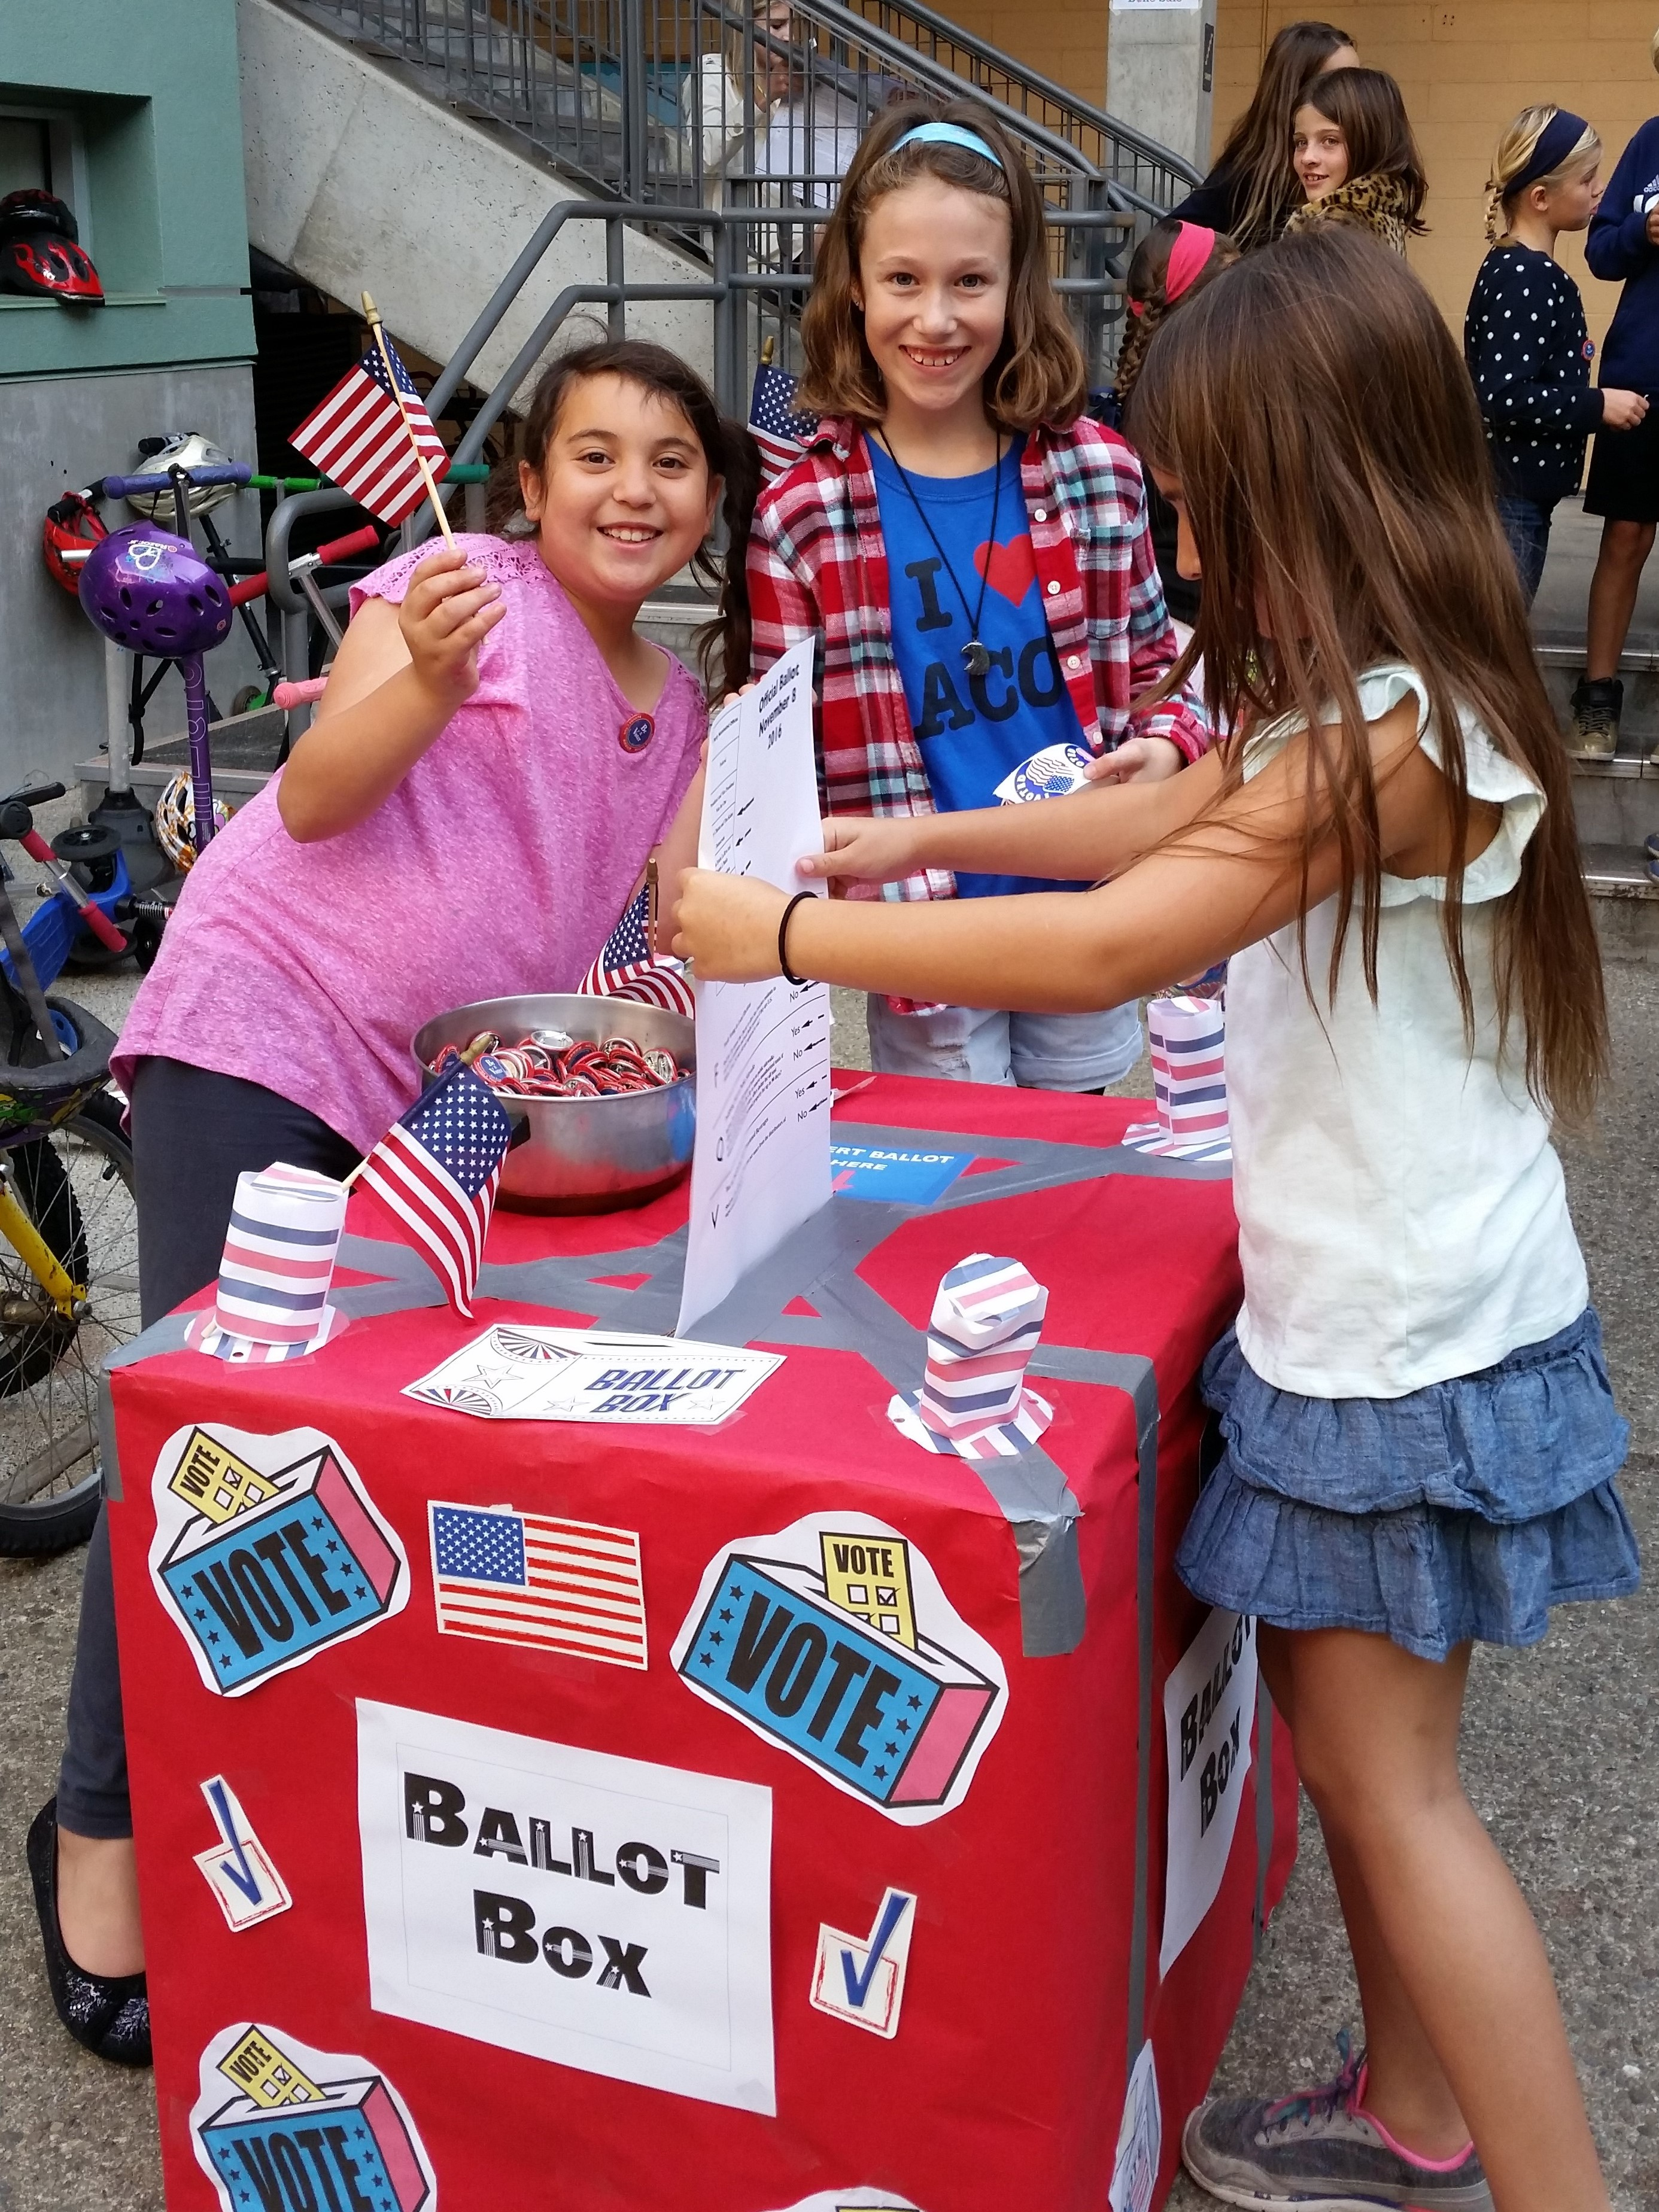 Girls smiling as they use a student ballot box at a school election day event